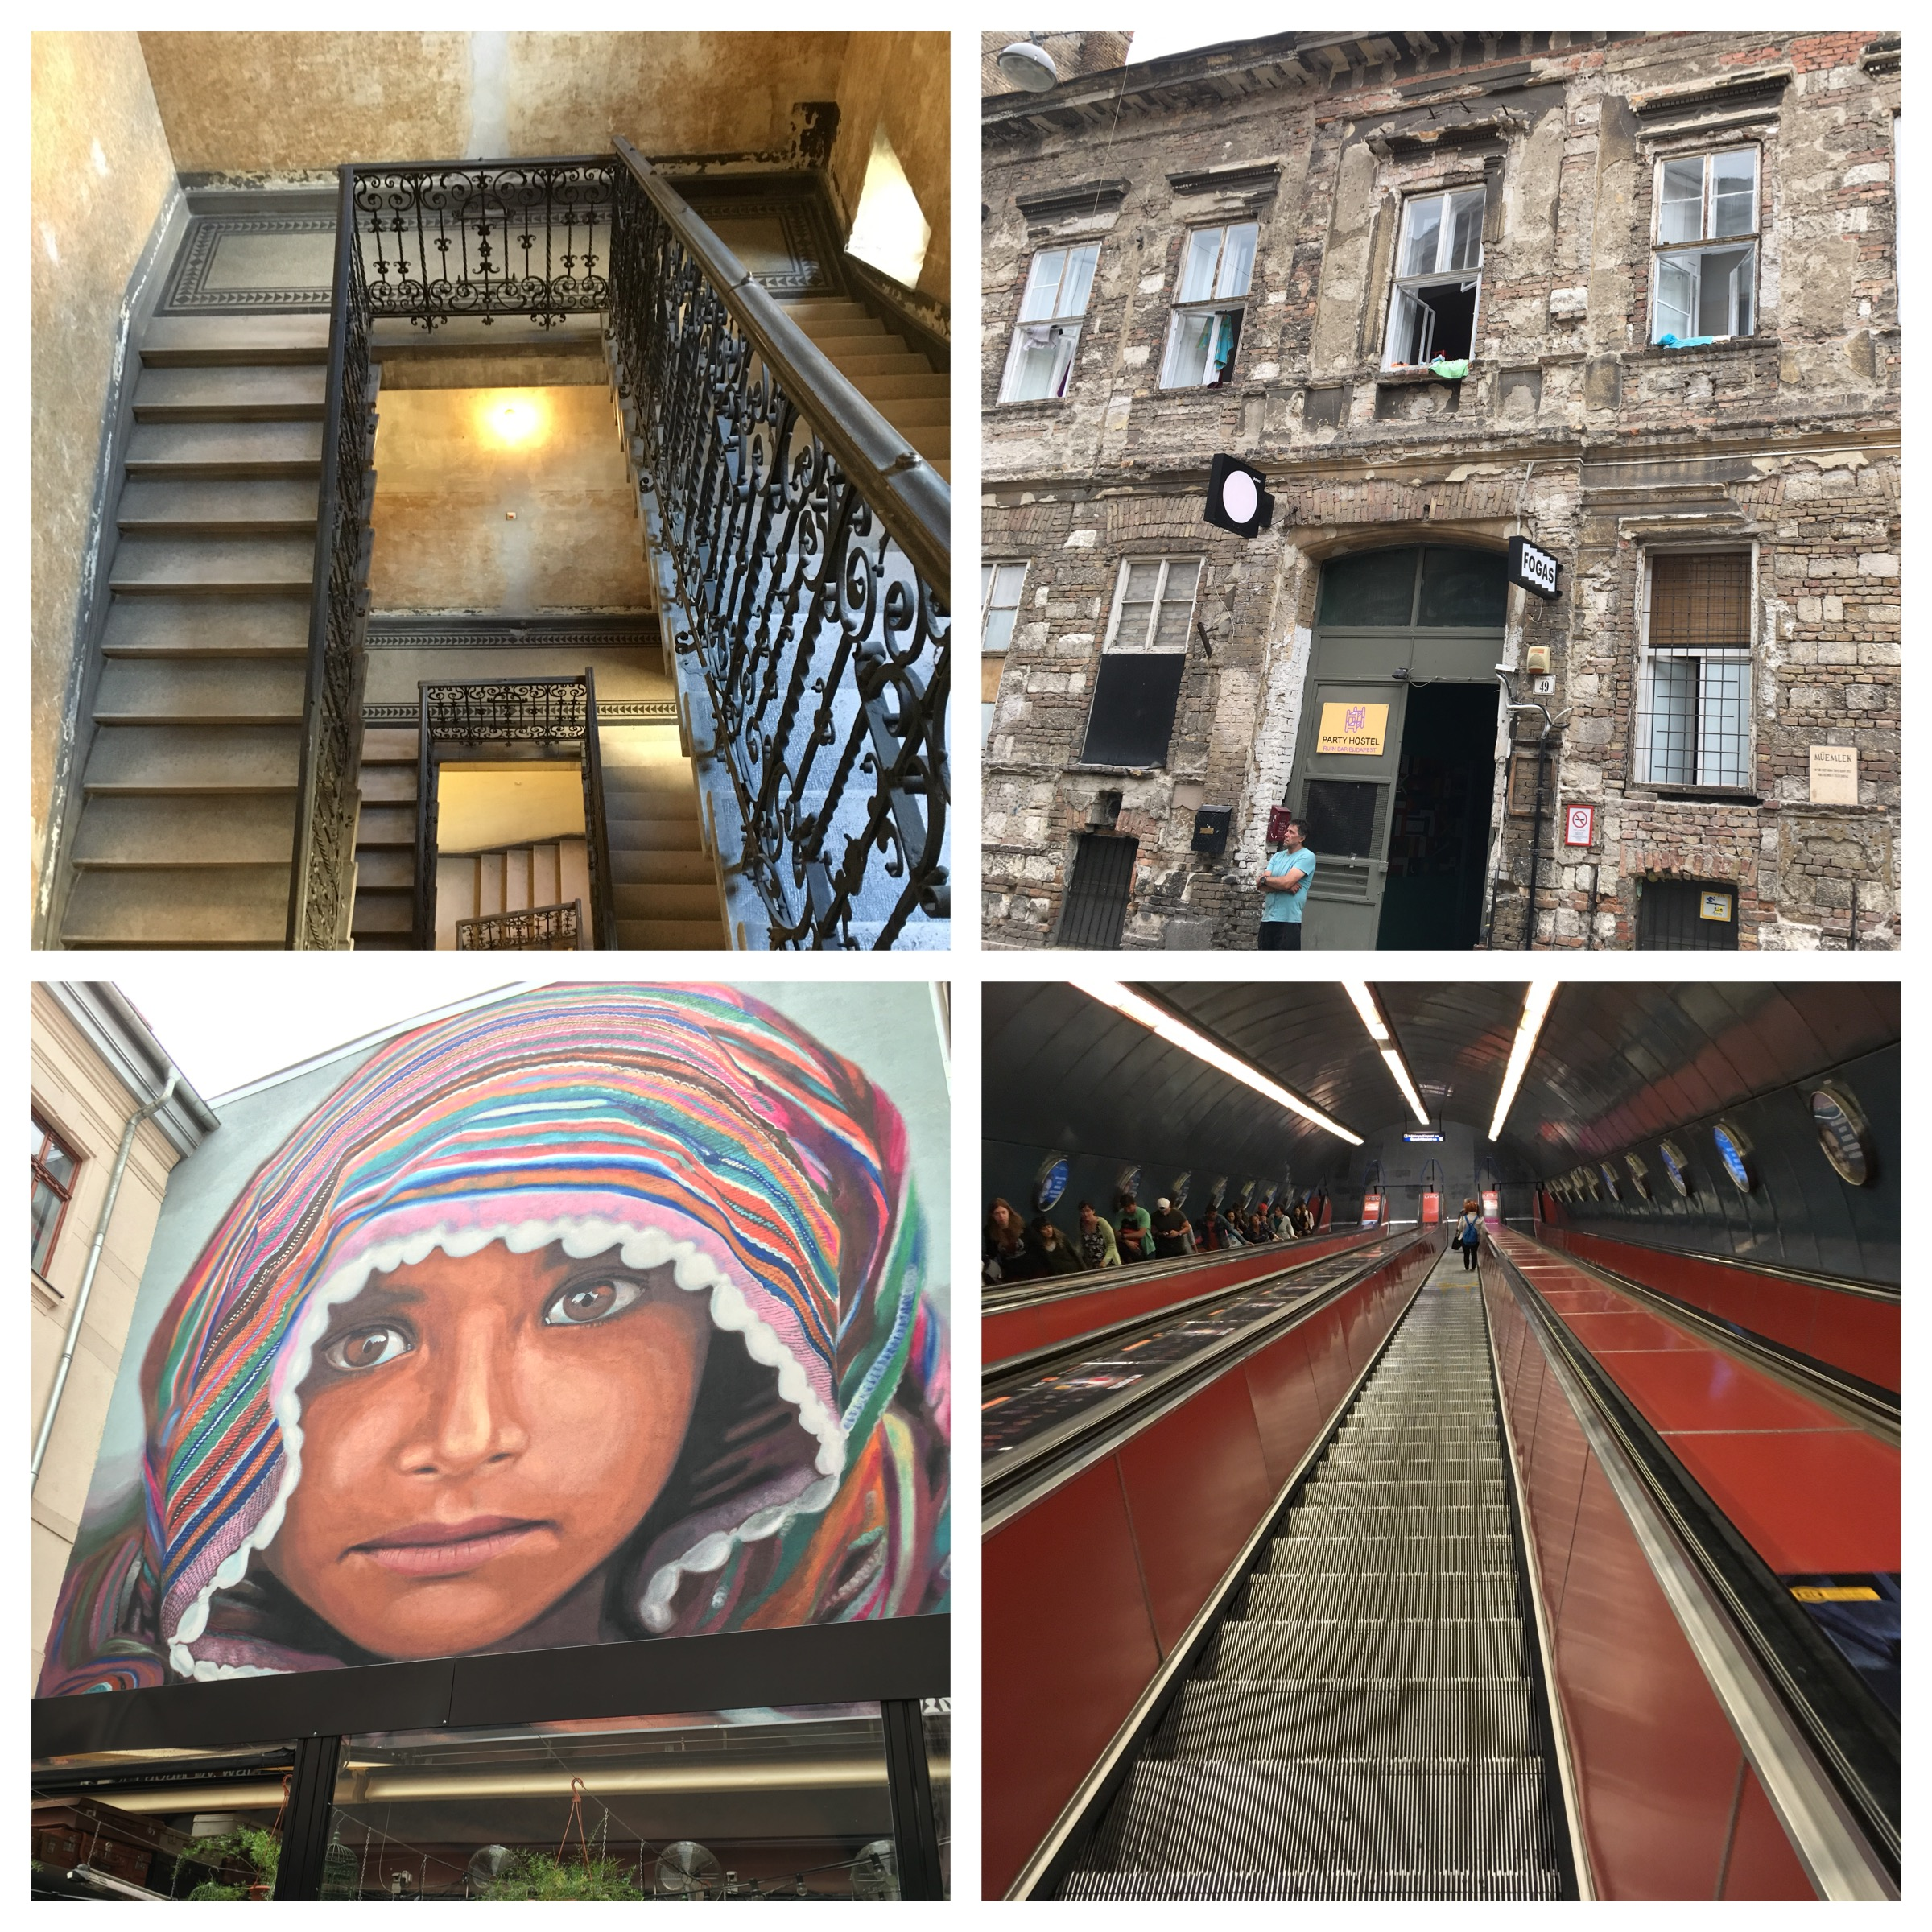 Clockwise from top left: the stairwell to my friends' apartment, the facade of a trendy city hostel, the extremely steep escalators in the subway, wall art at the Passage.